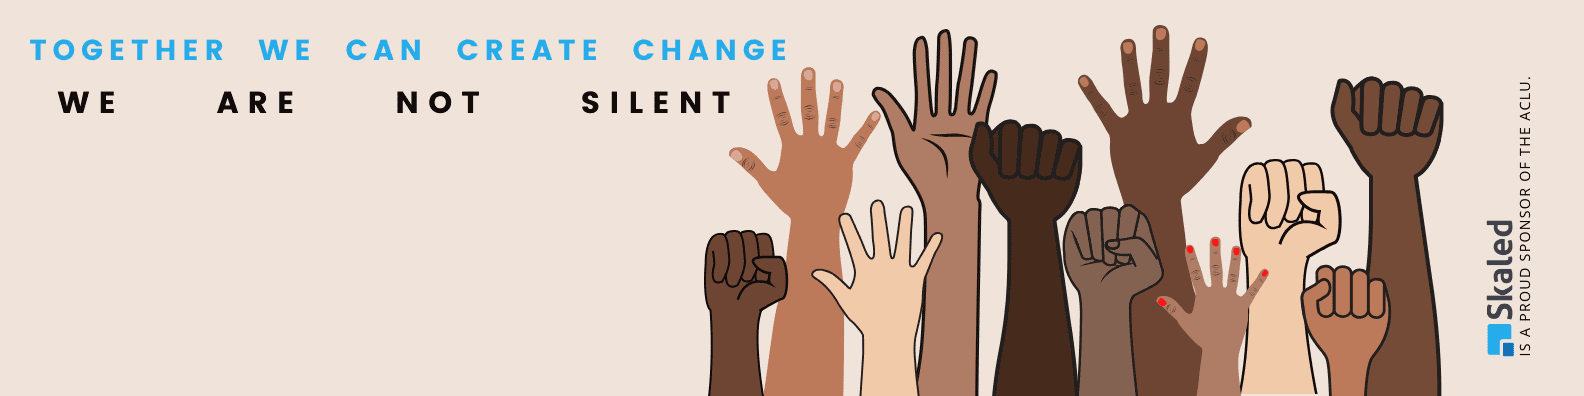 together we can create change